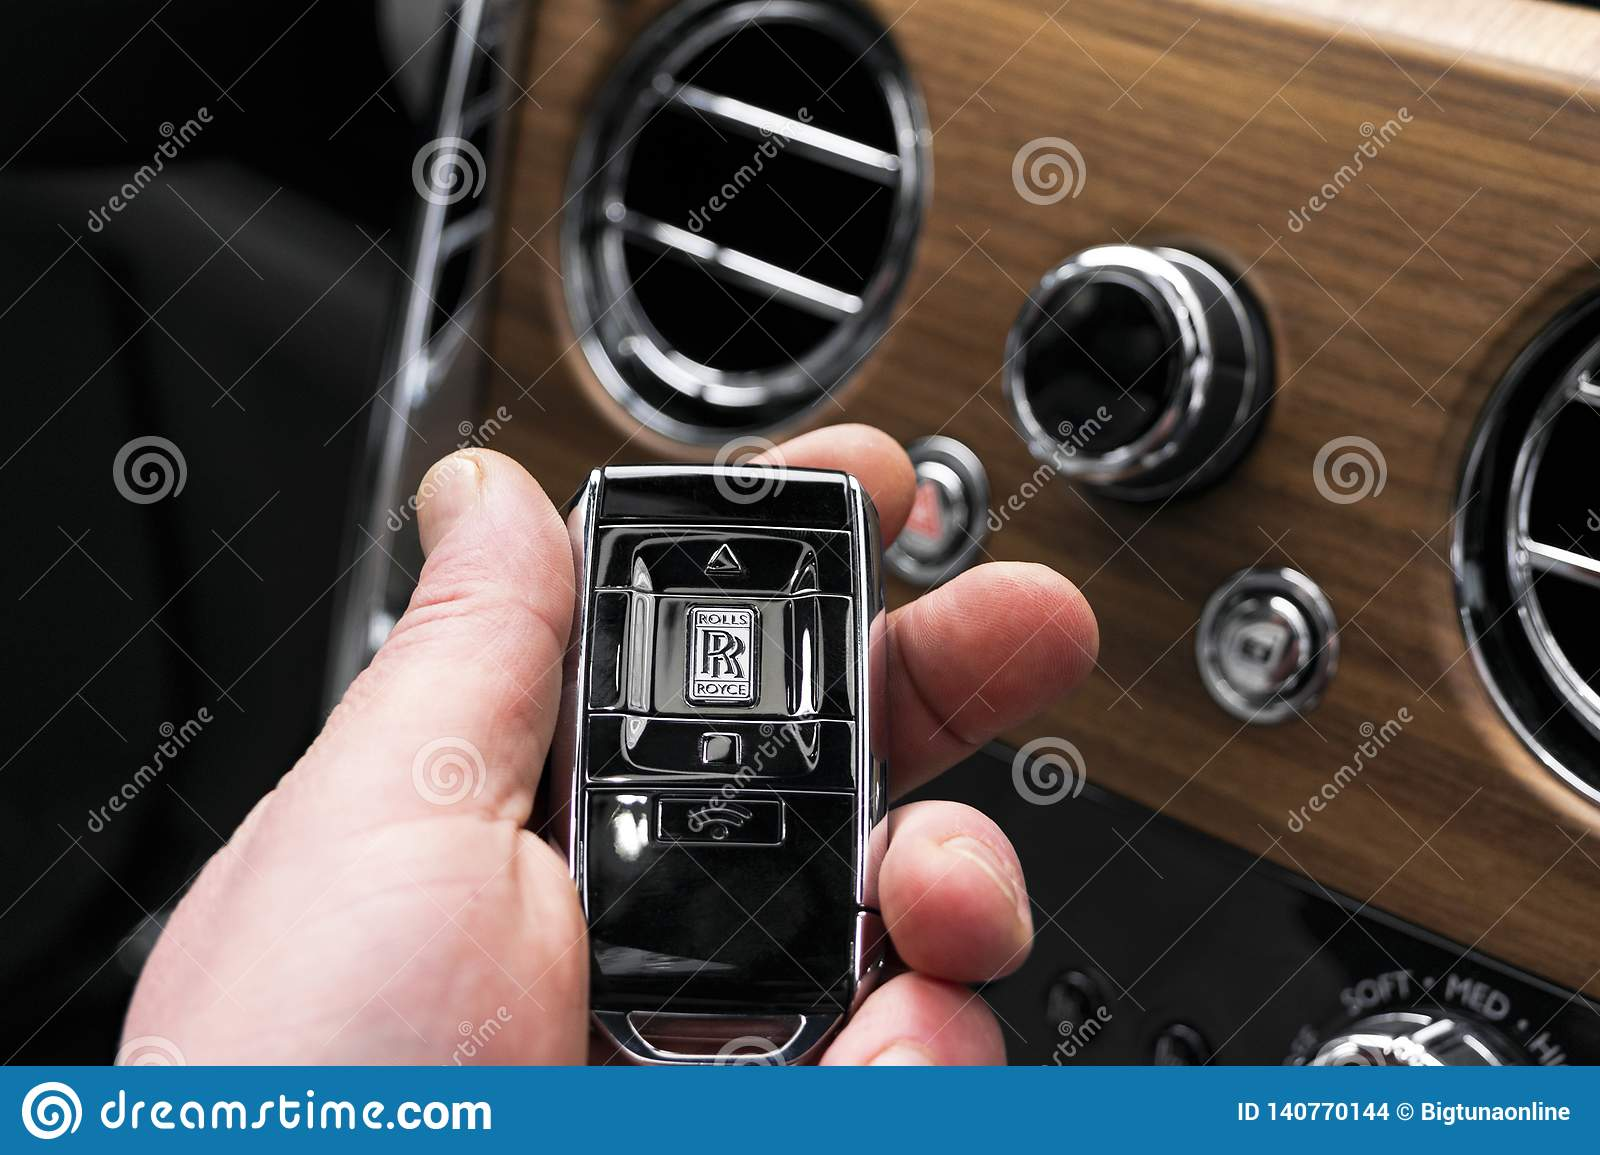 The New Rolls Royce Cullinan Wireless Keys In Male Hand Interior With Natural Wood Panel Rolls Royce Cullinan Luxury Suv Wireles Editorial Stock Image Image Of Driver Handle 140770144